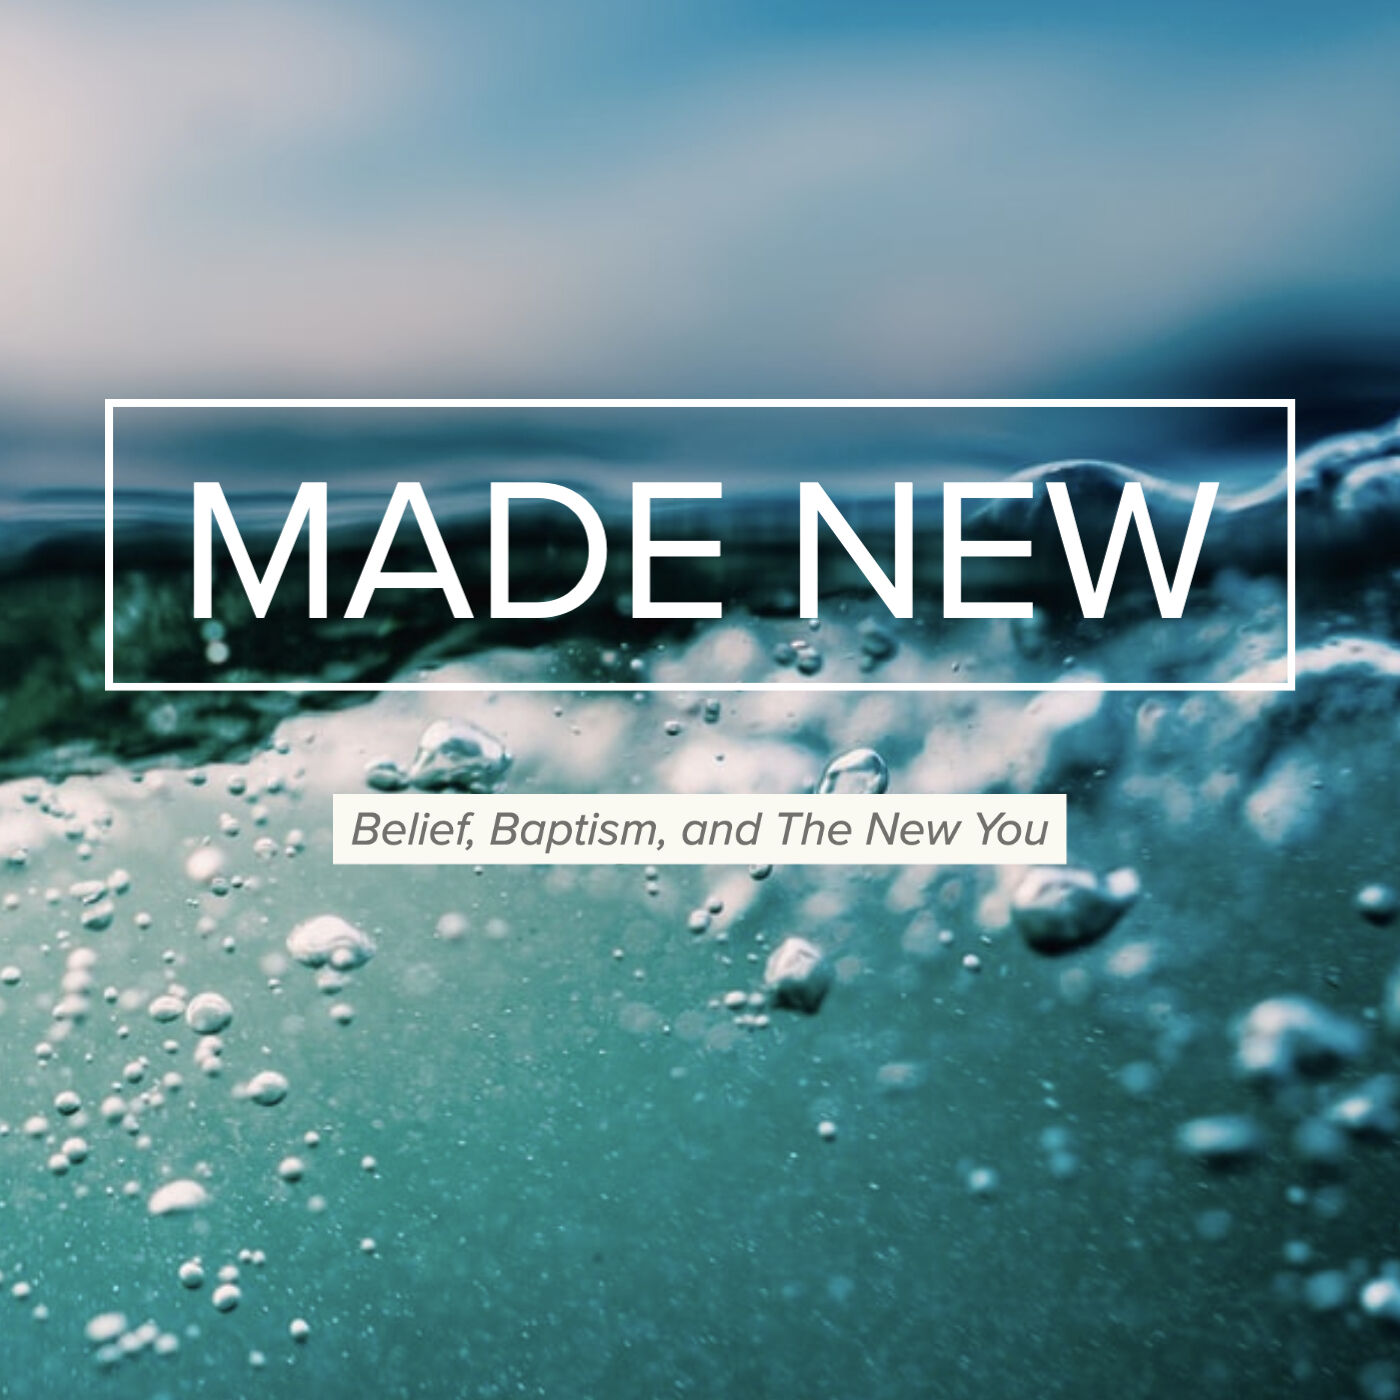 Made New: Belief, Baptism, and The New You